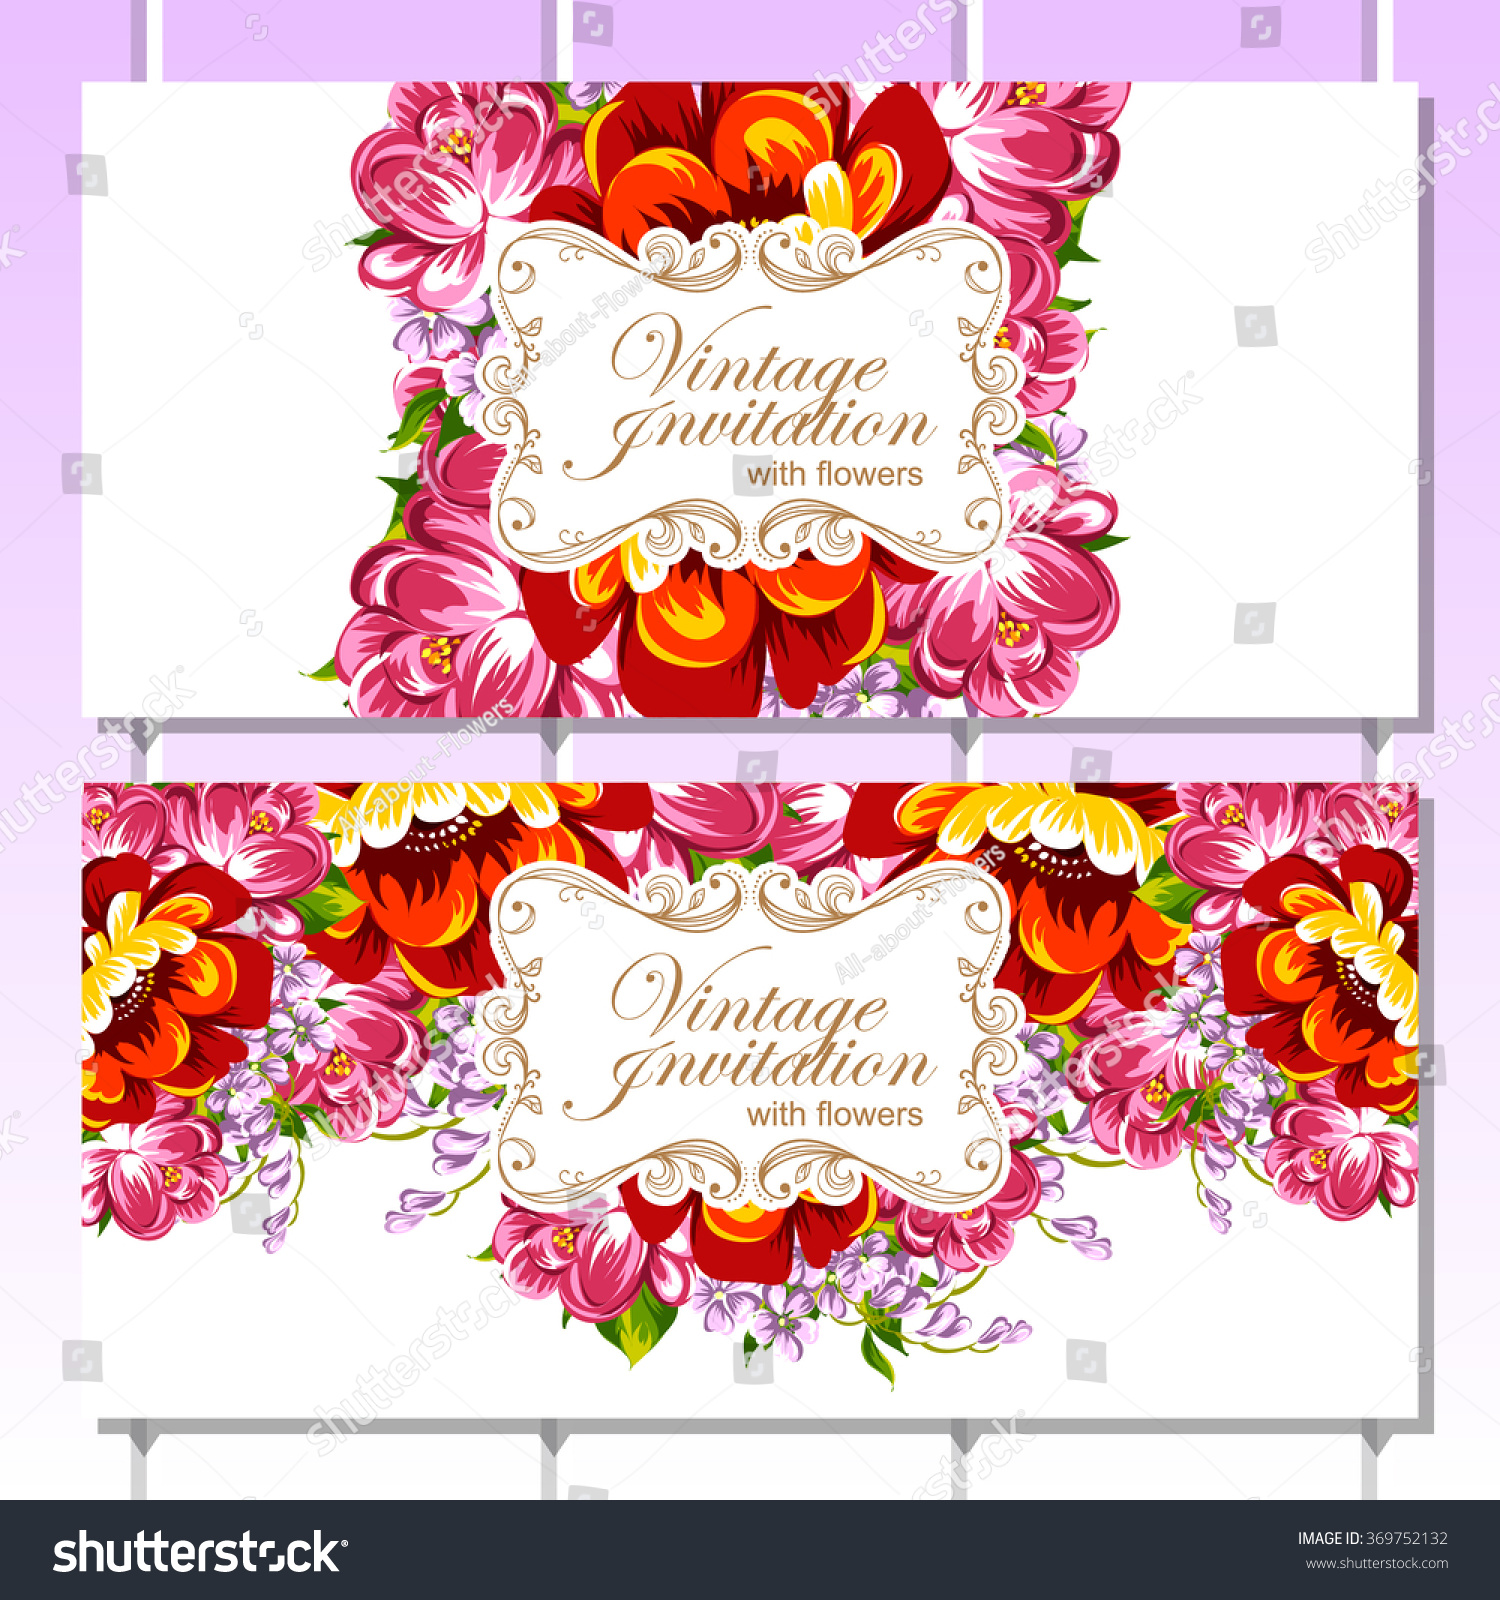 Vintage Delicate Invitation Flowers Wedding Marriage Stock Vector ...